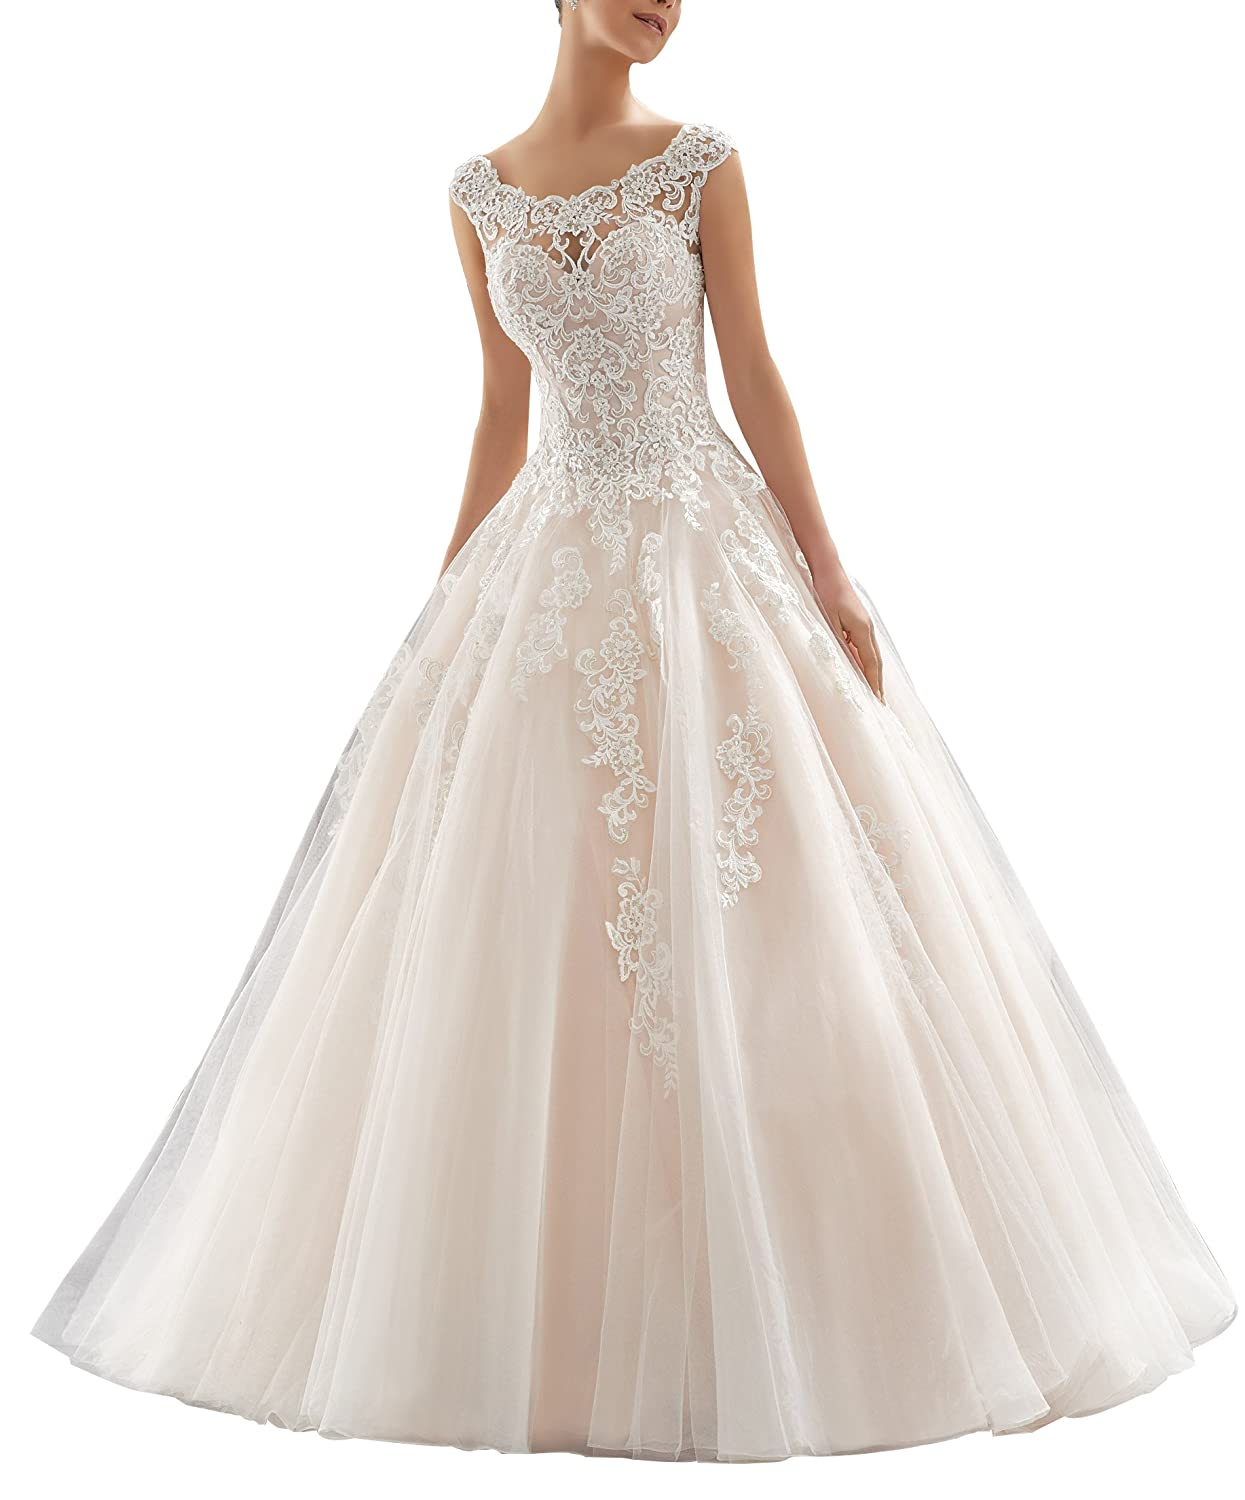 Womens Embroidered Lace Square Neck A Line Wedding Dress Cap Sleeve